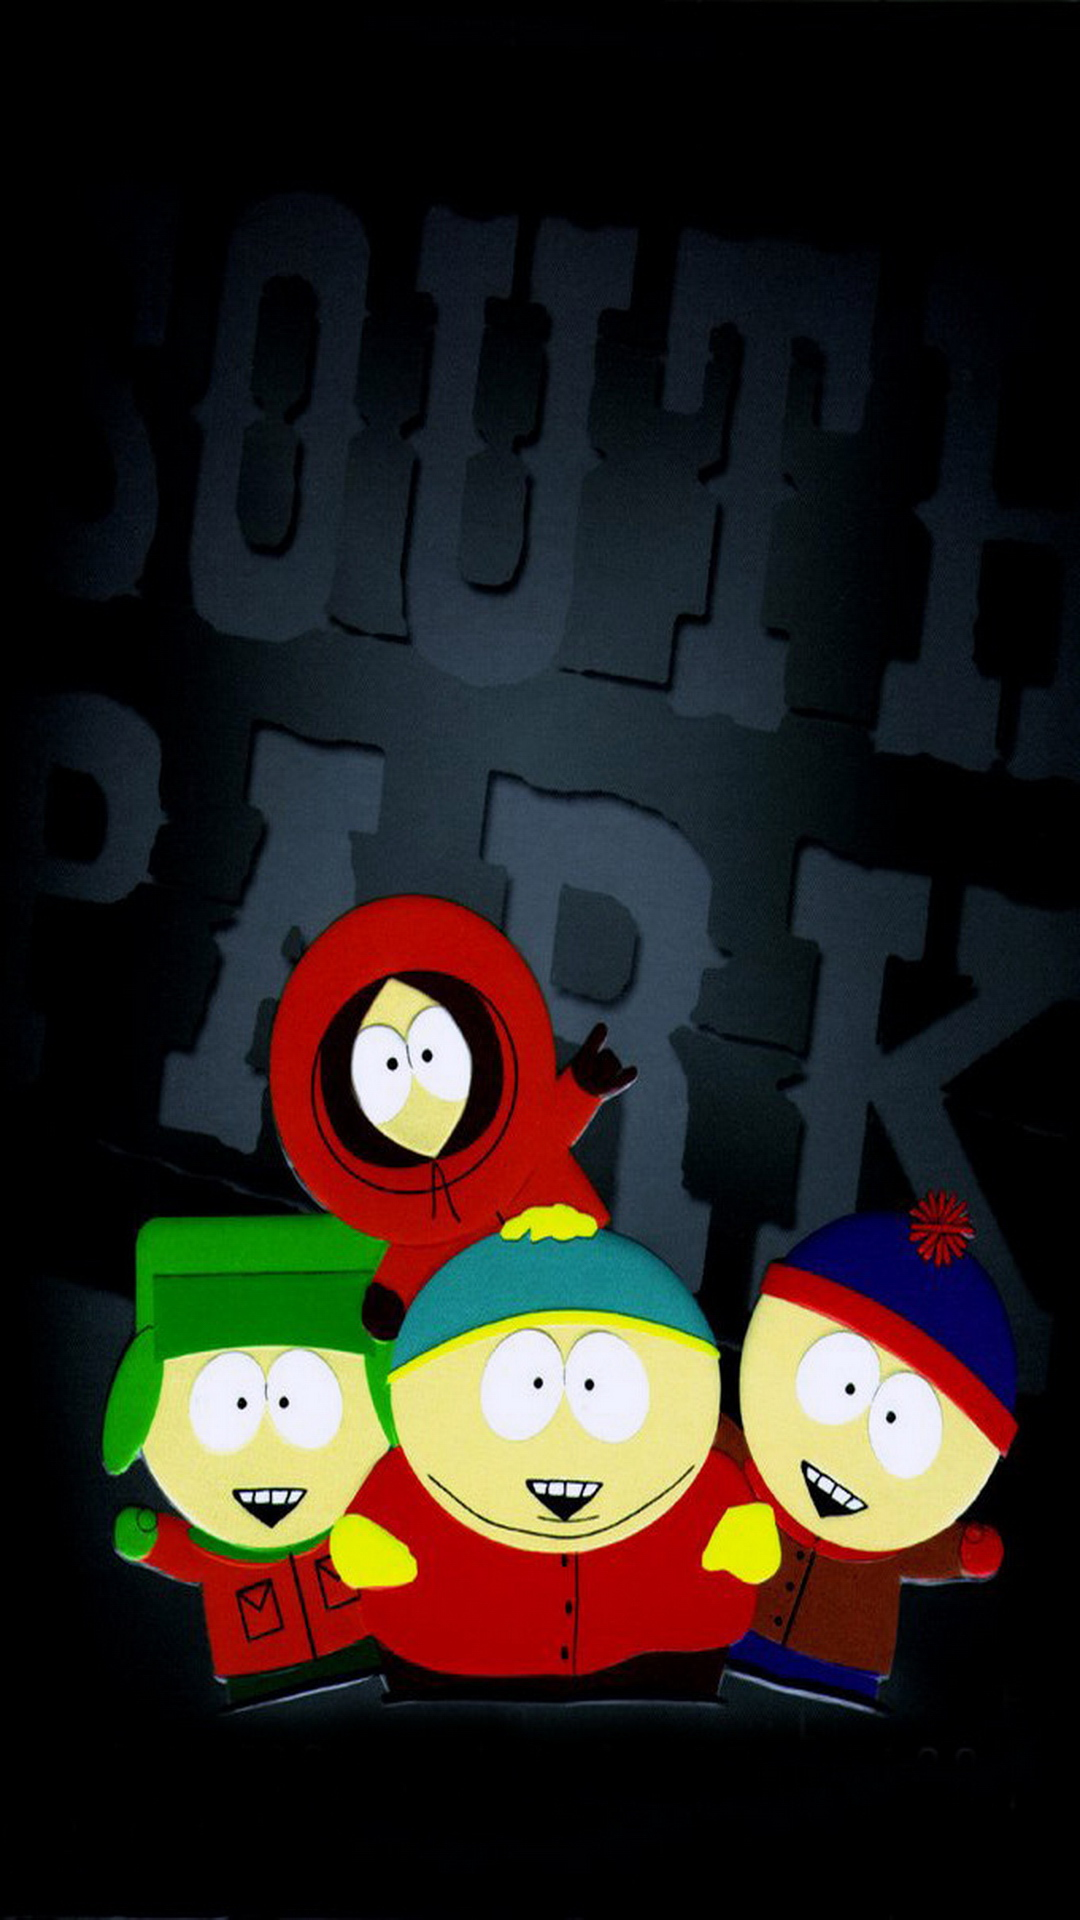 south park phone wallpaper - photo #6